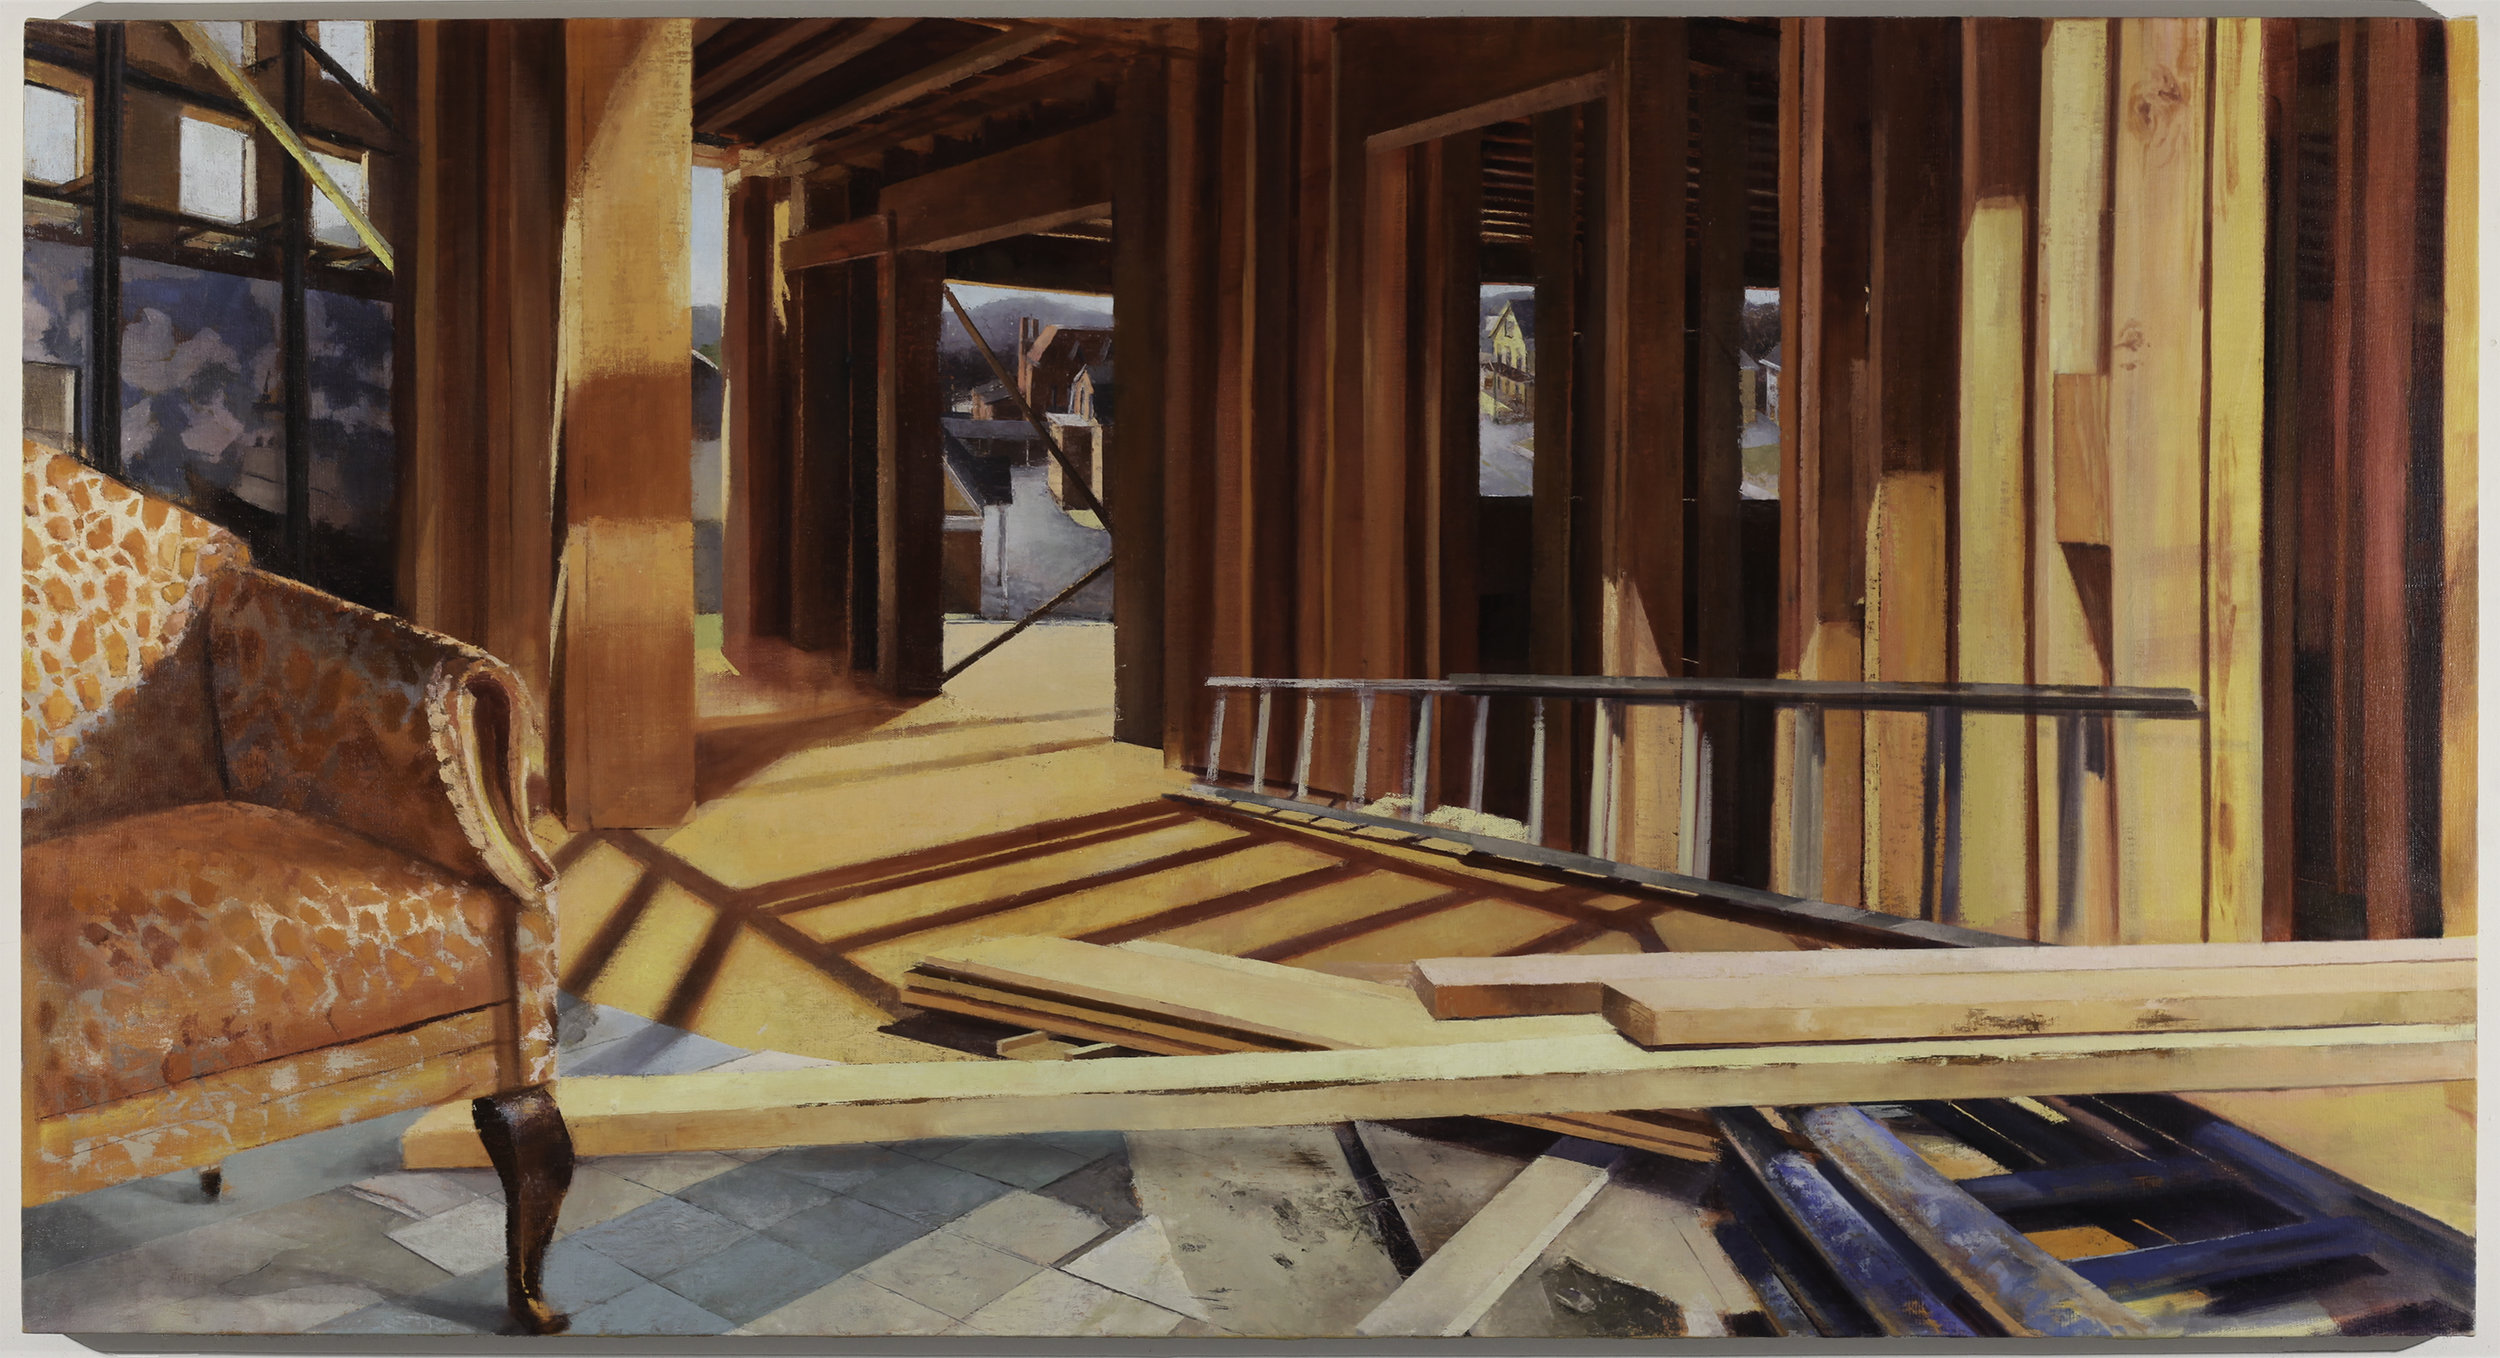 Bergenfield, 2016 oil and acrylic on linen, 40 x 70 in